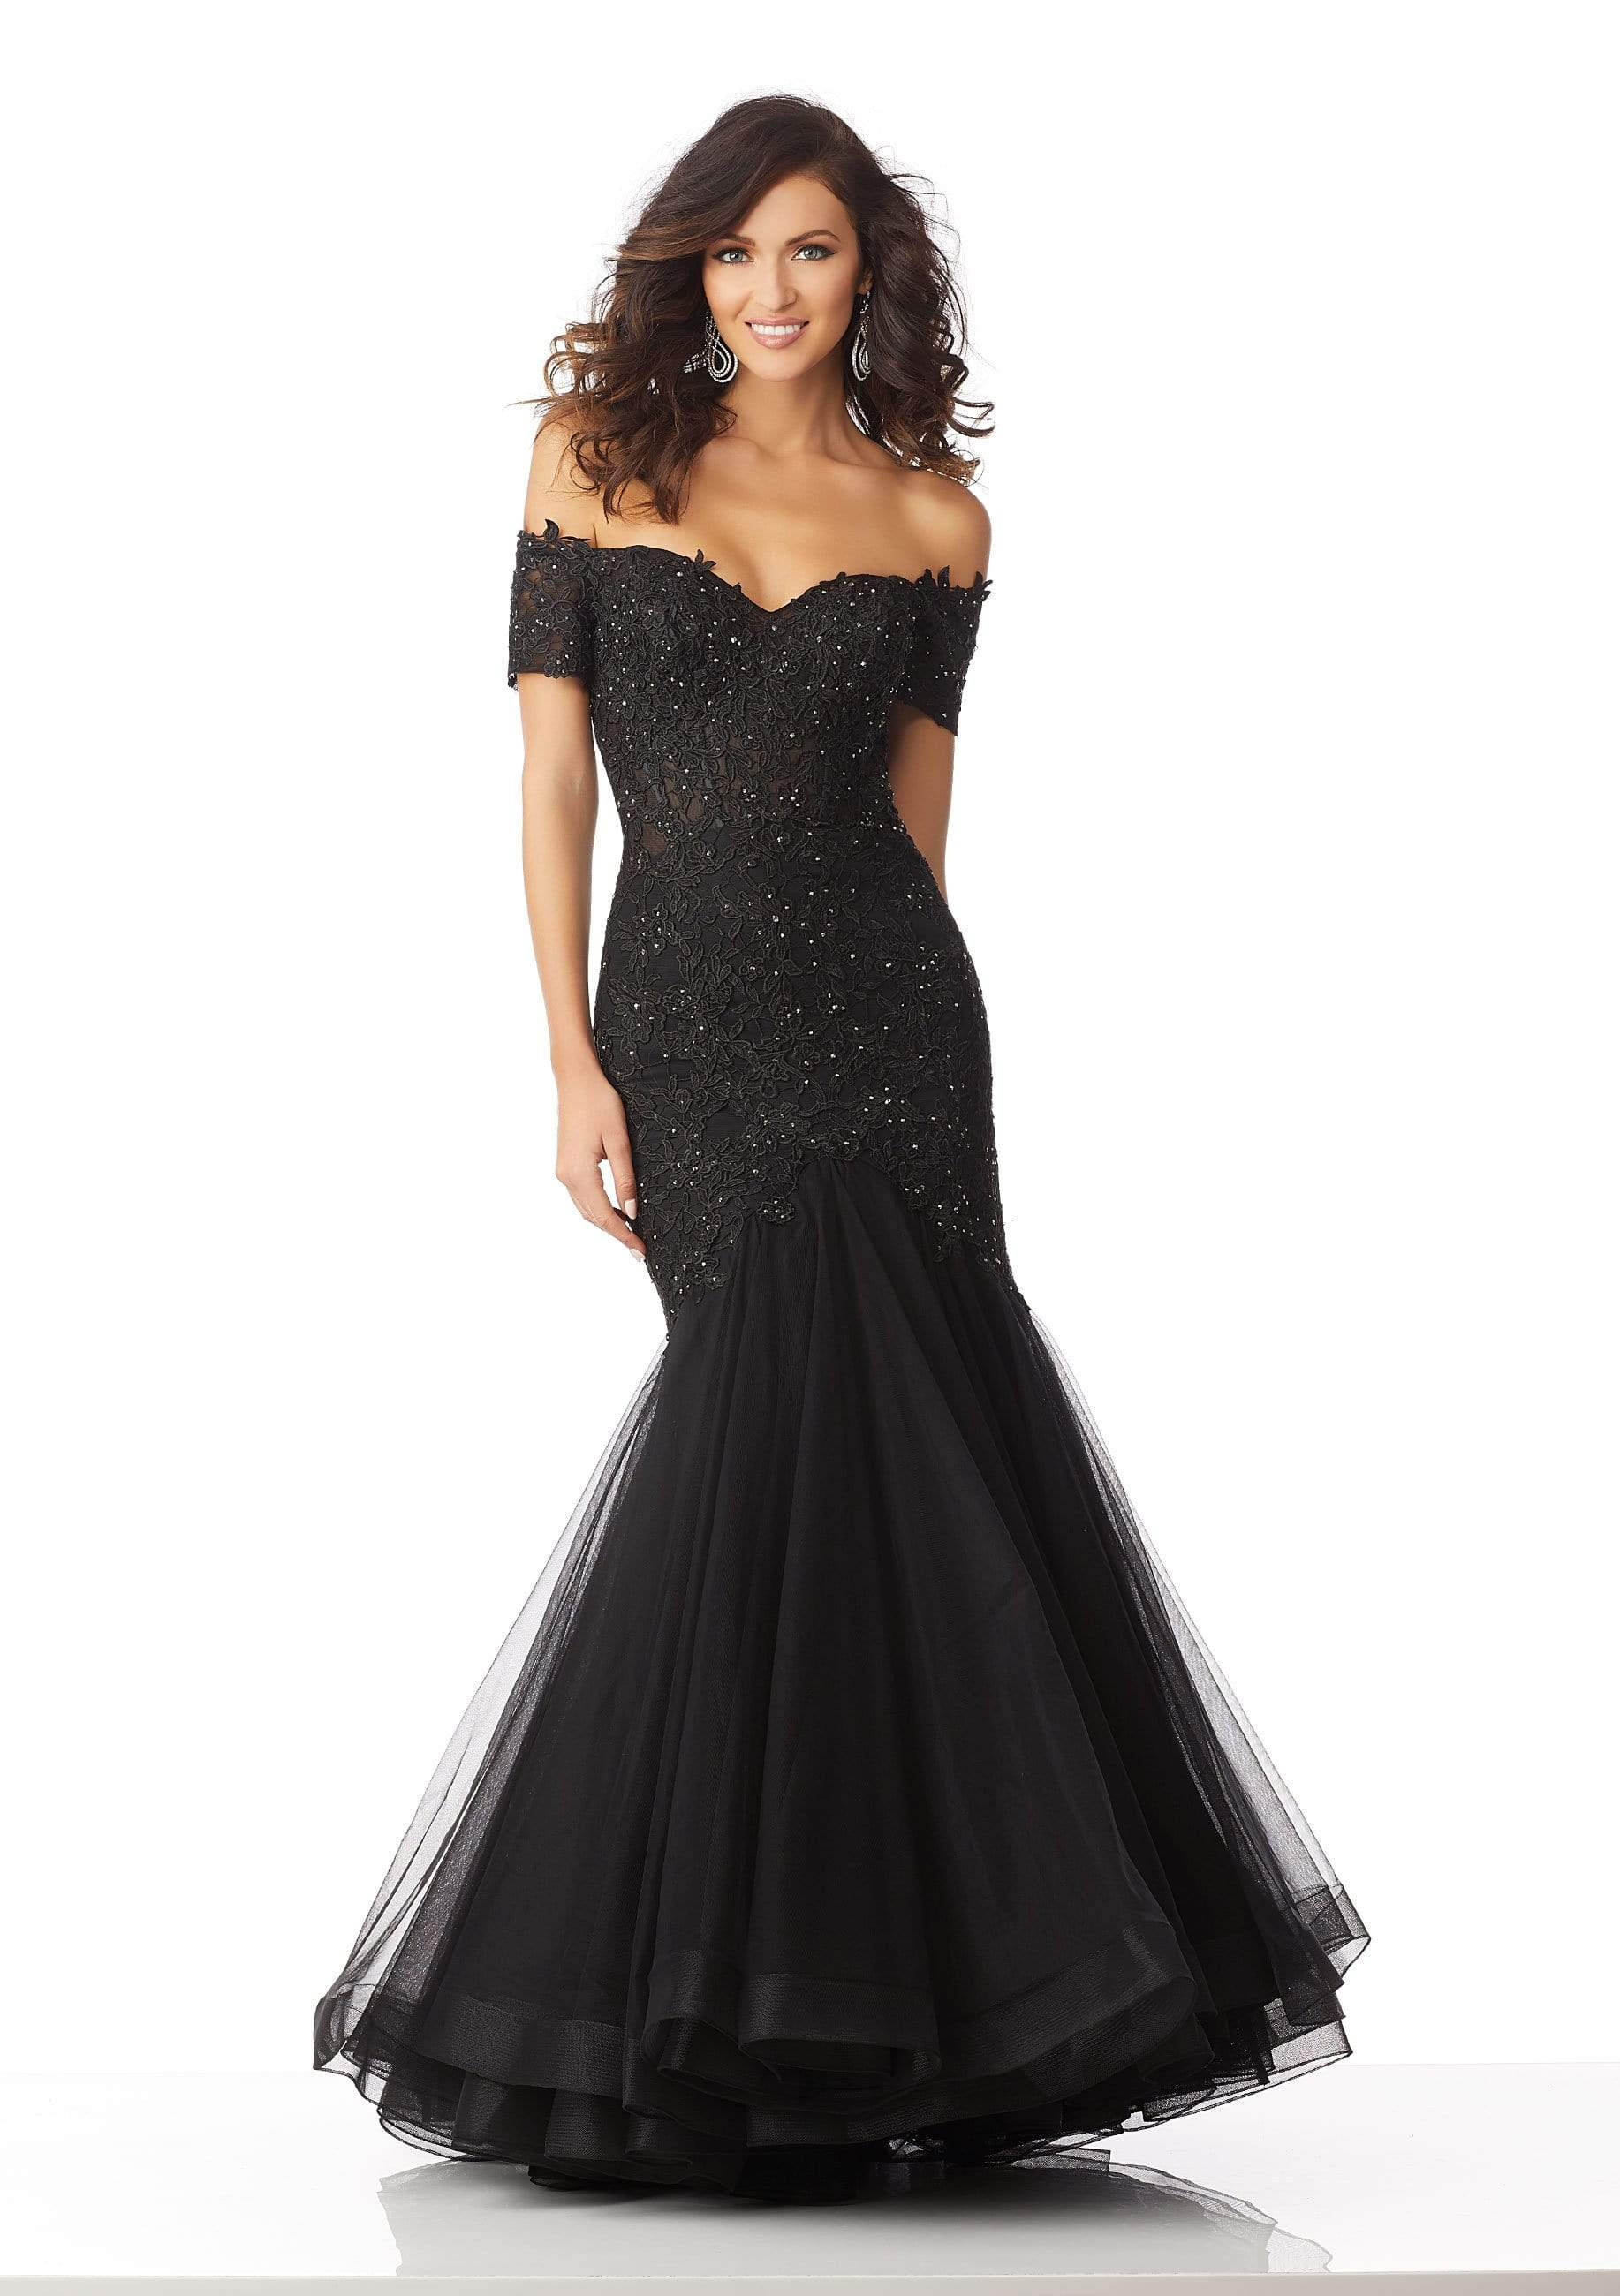 MGNY By Mori Lee - 71825 Lace Appliqued Off-Shoulder Trumpet Dress Pageant Dresses 0 / Black